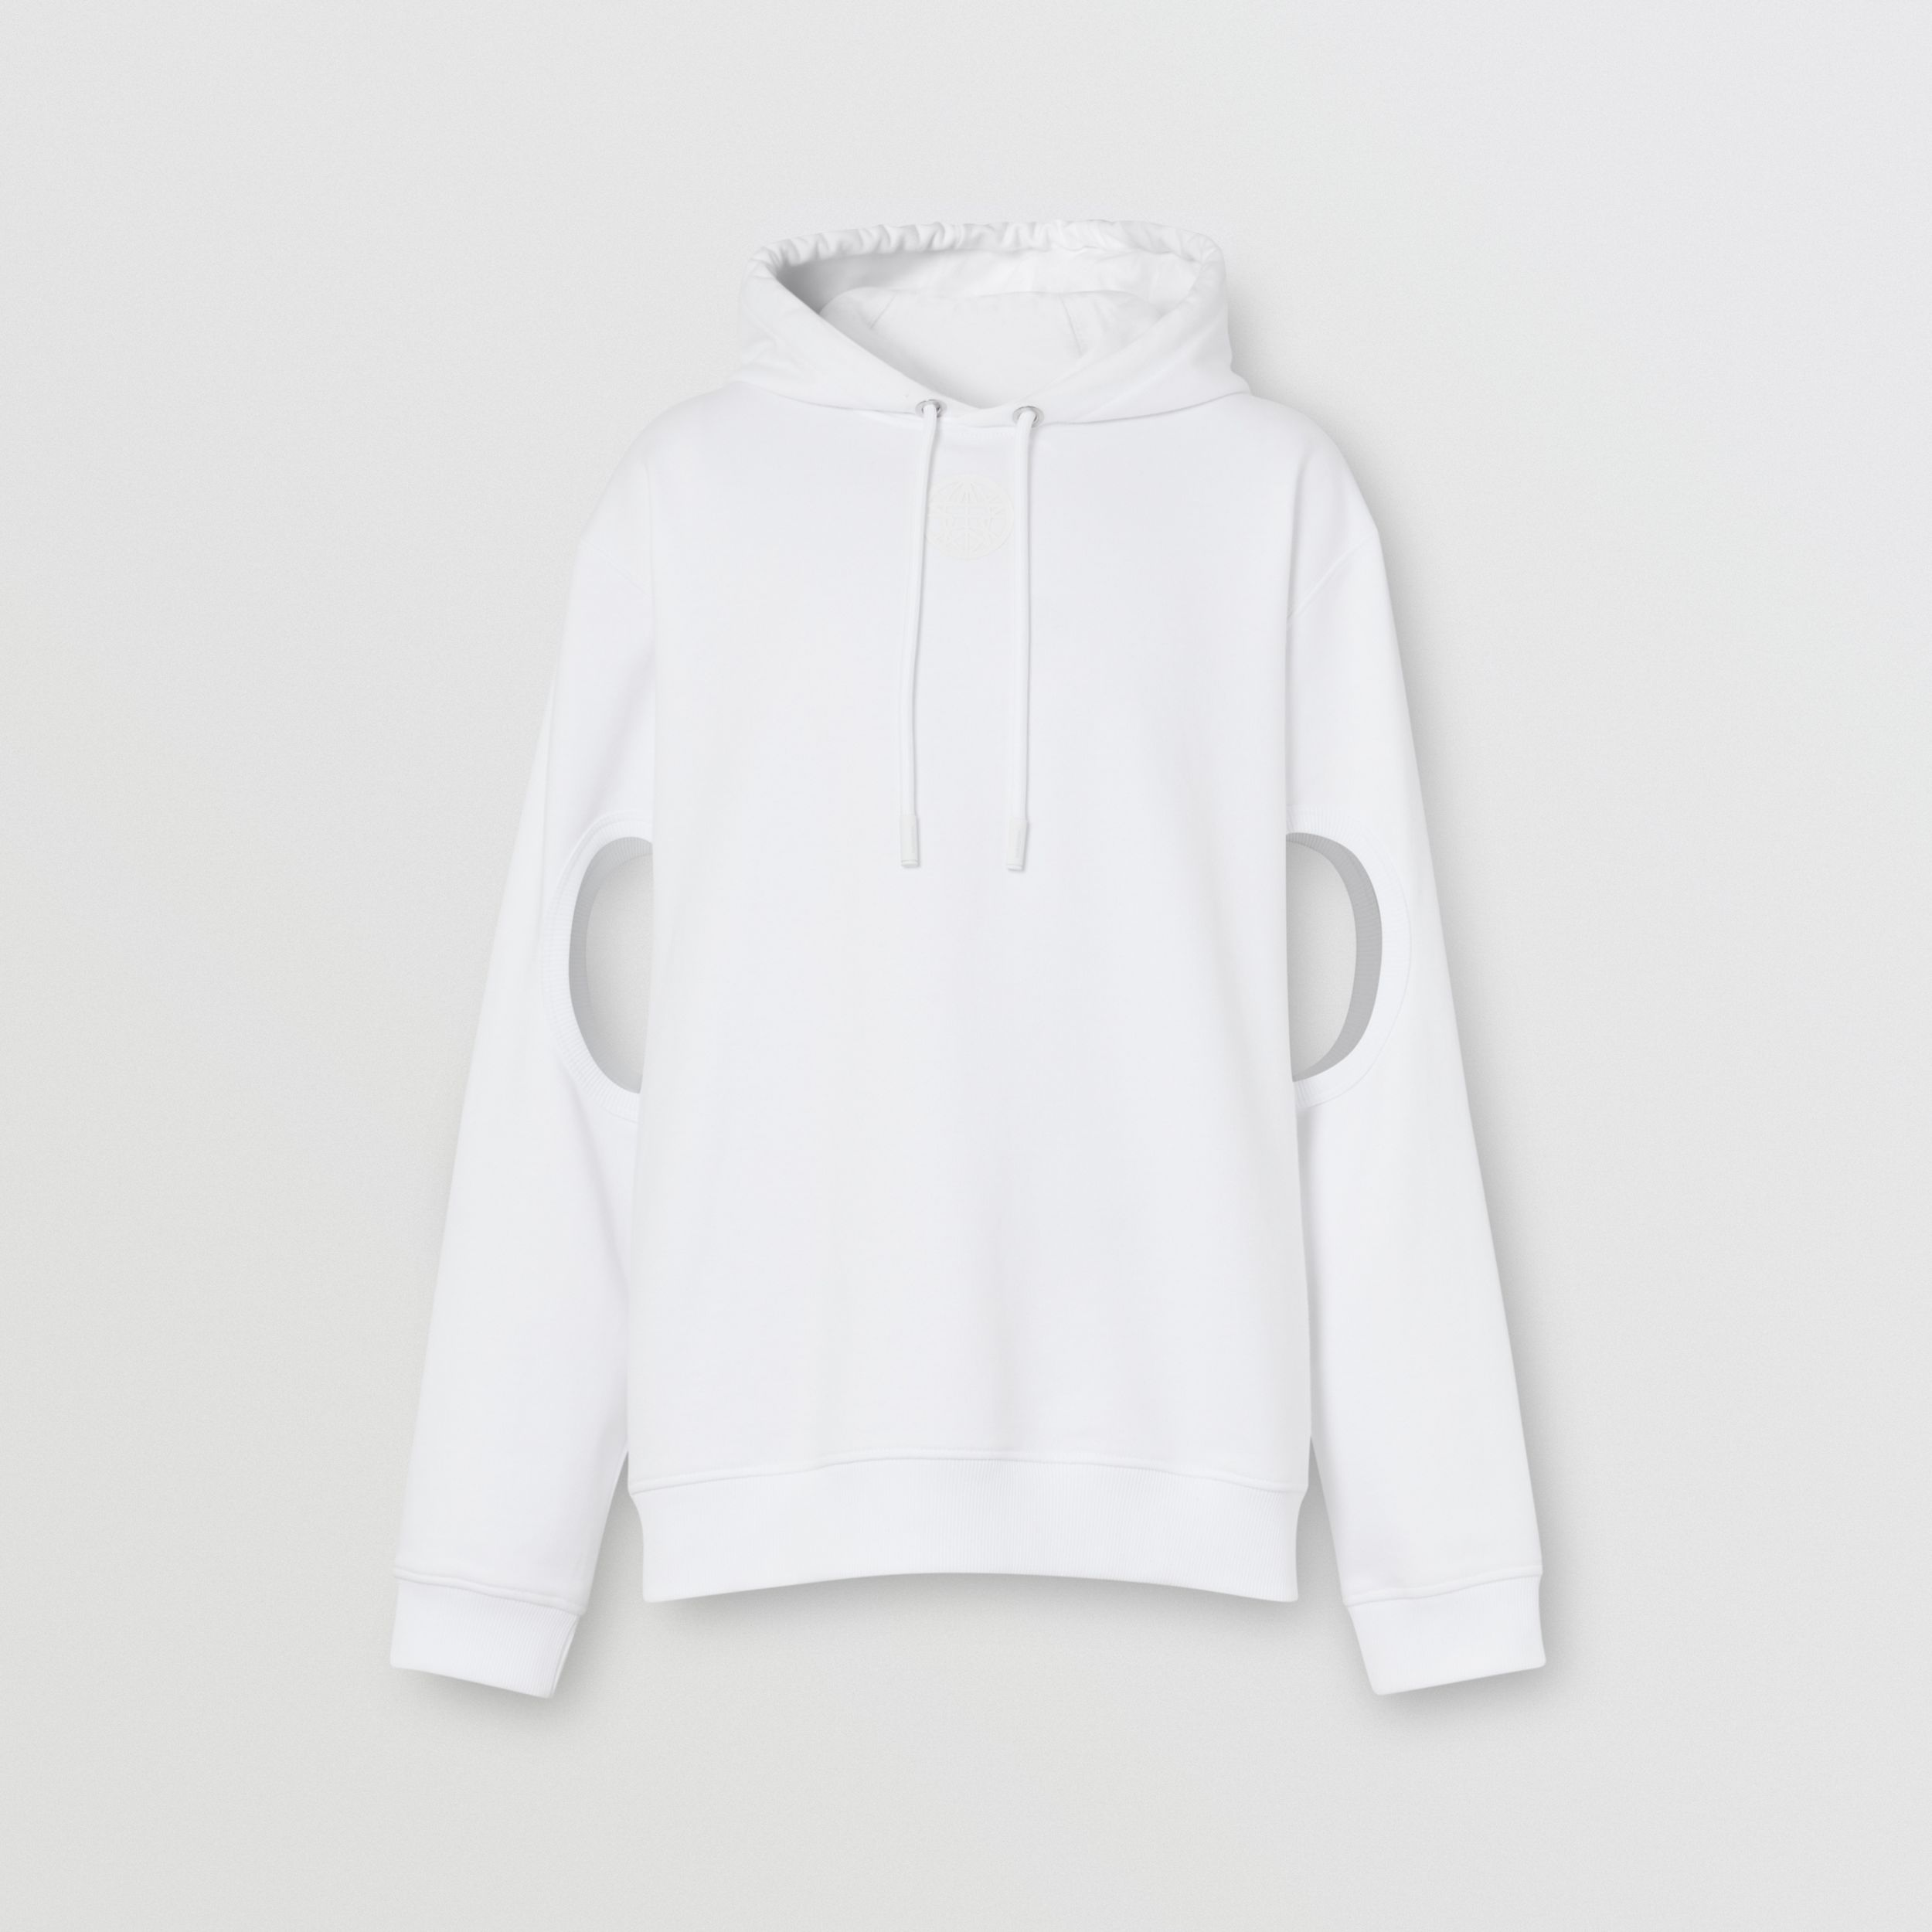 Cut-out Sleeve Globe Graphic Cotton Hoodie in Optic White - Men | Burberry - 4